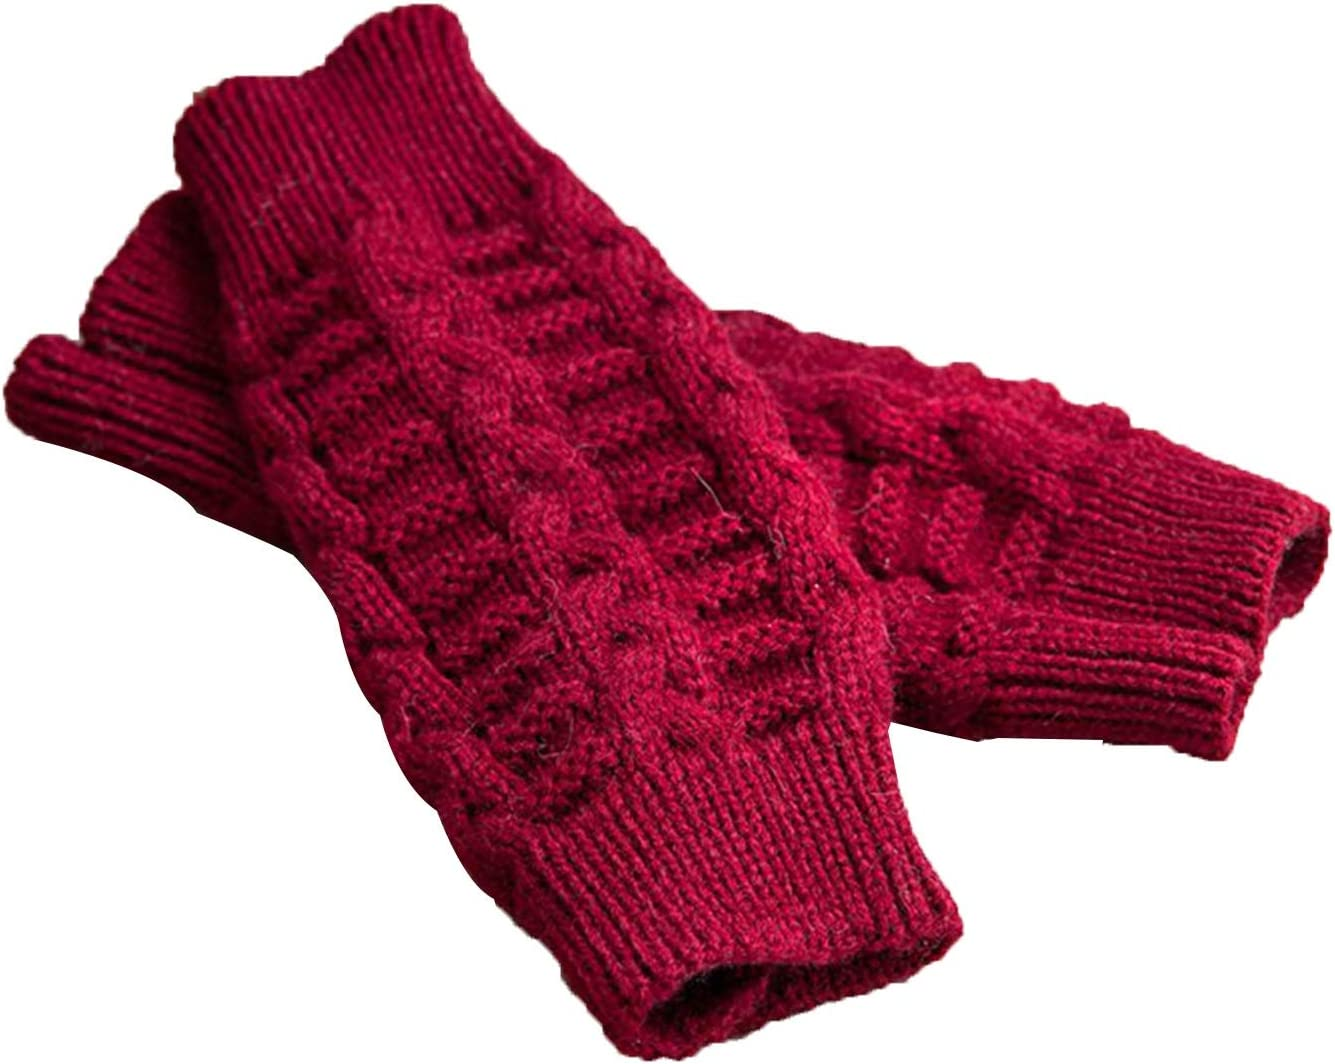 Gloves Knitted Gloves Winter, Warm Cable Knitted Fingerless Gloves, Thumb Control Mittens (Color : Red)